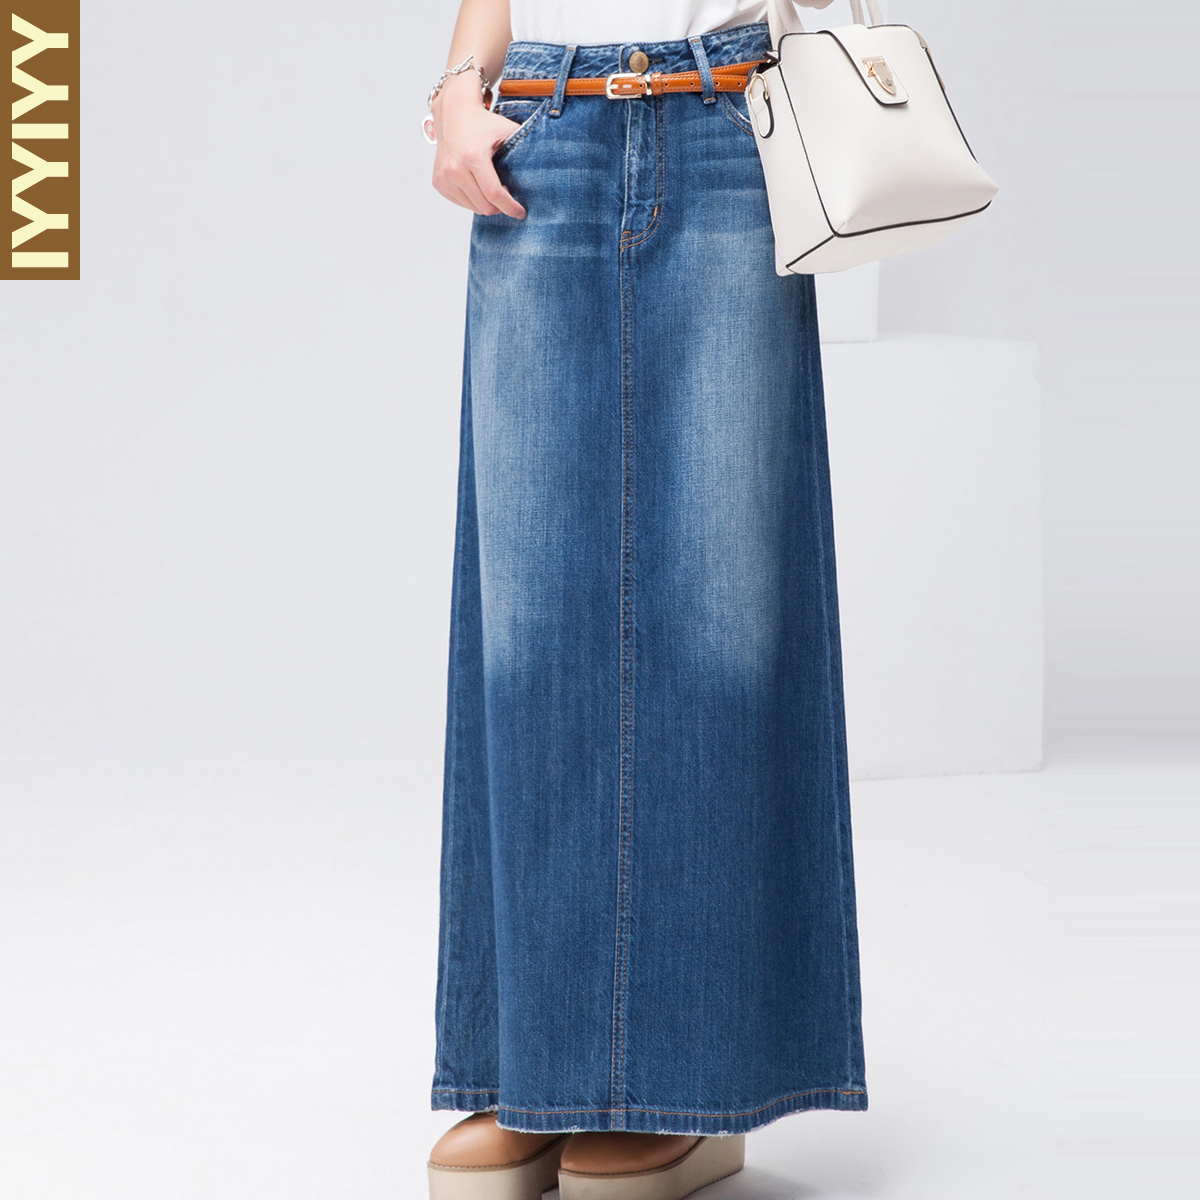 Free Shipping 2018 New Fashion Long Maxi Denim Jeans Skirt Spring And Autumn A-line Skirts Plus Size S-XL Blue Casual Skirts free shipping new spring and summer fashion men s denim jeans slim wear white pantyhose feet